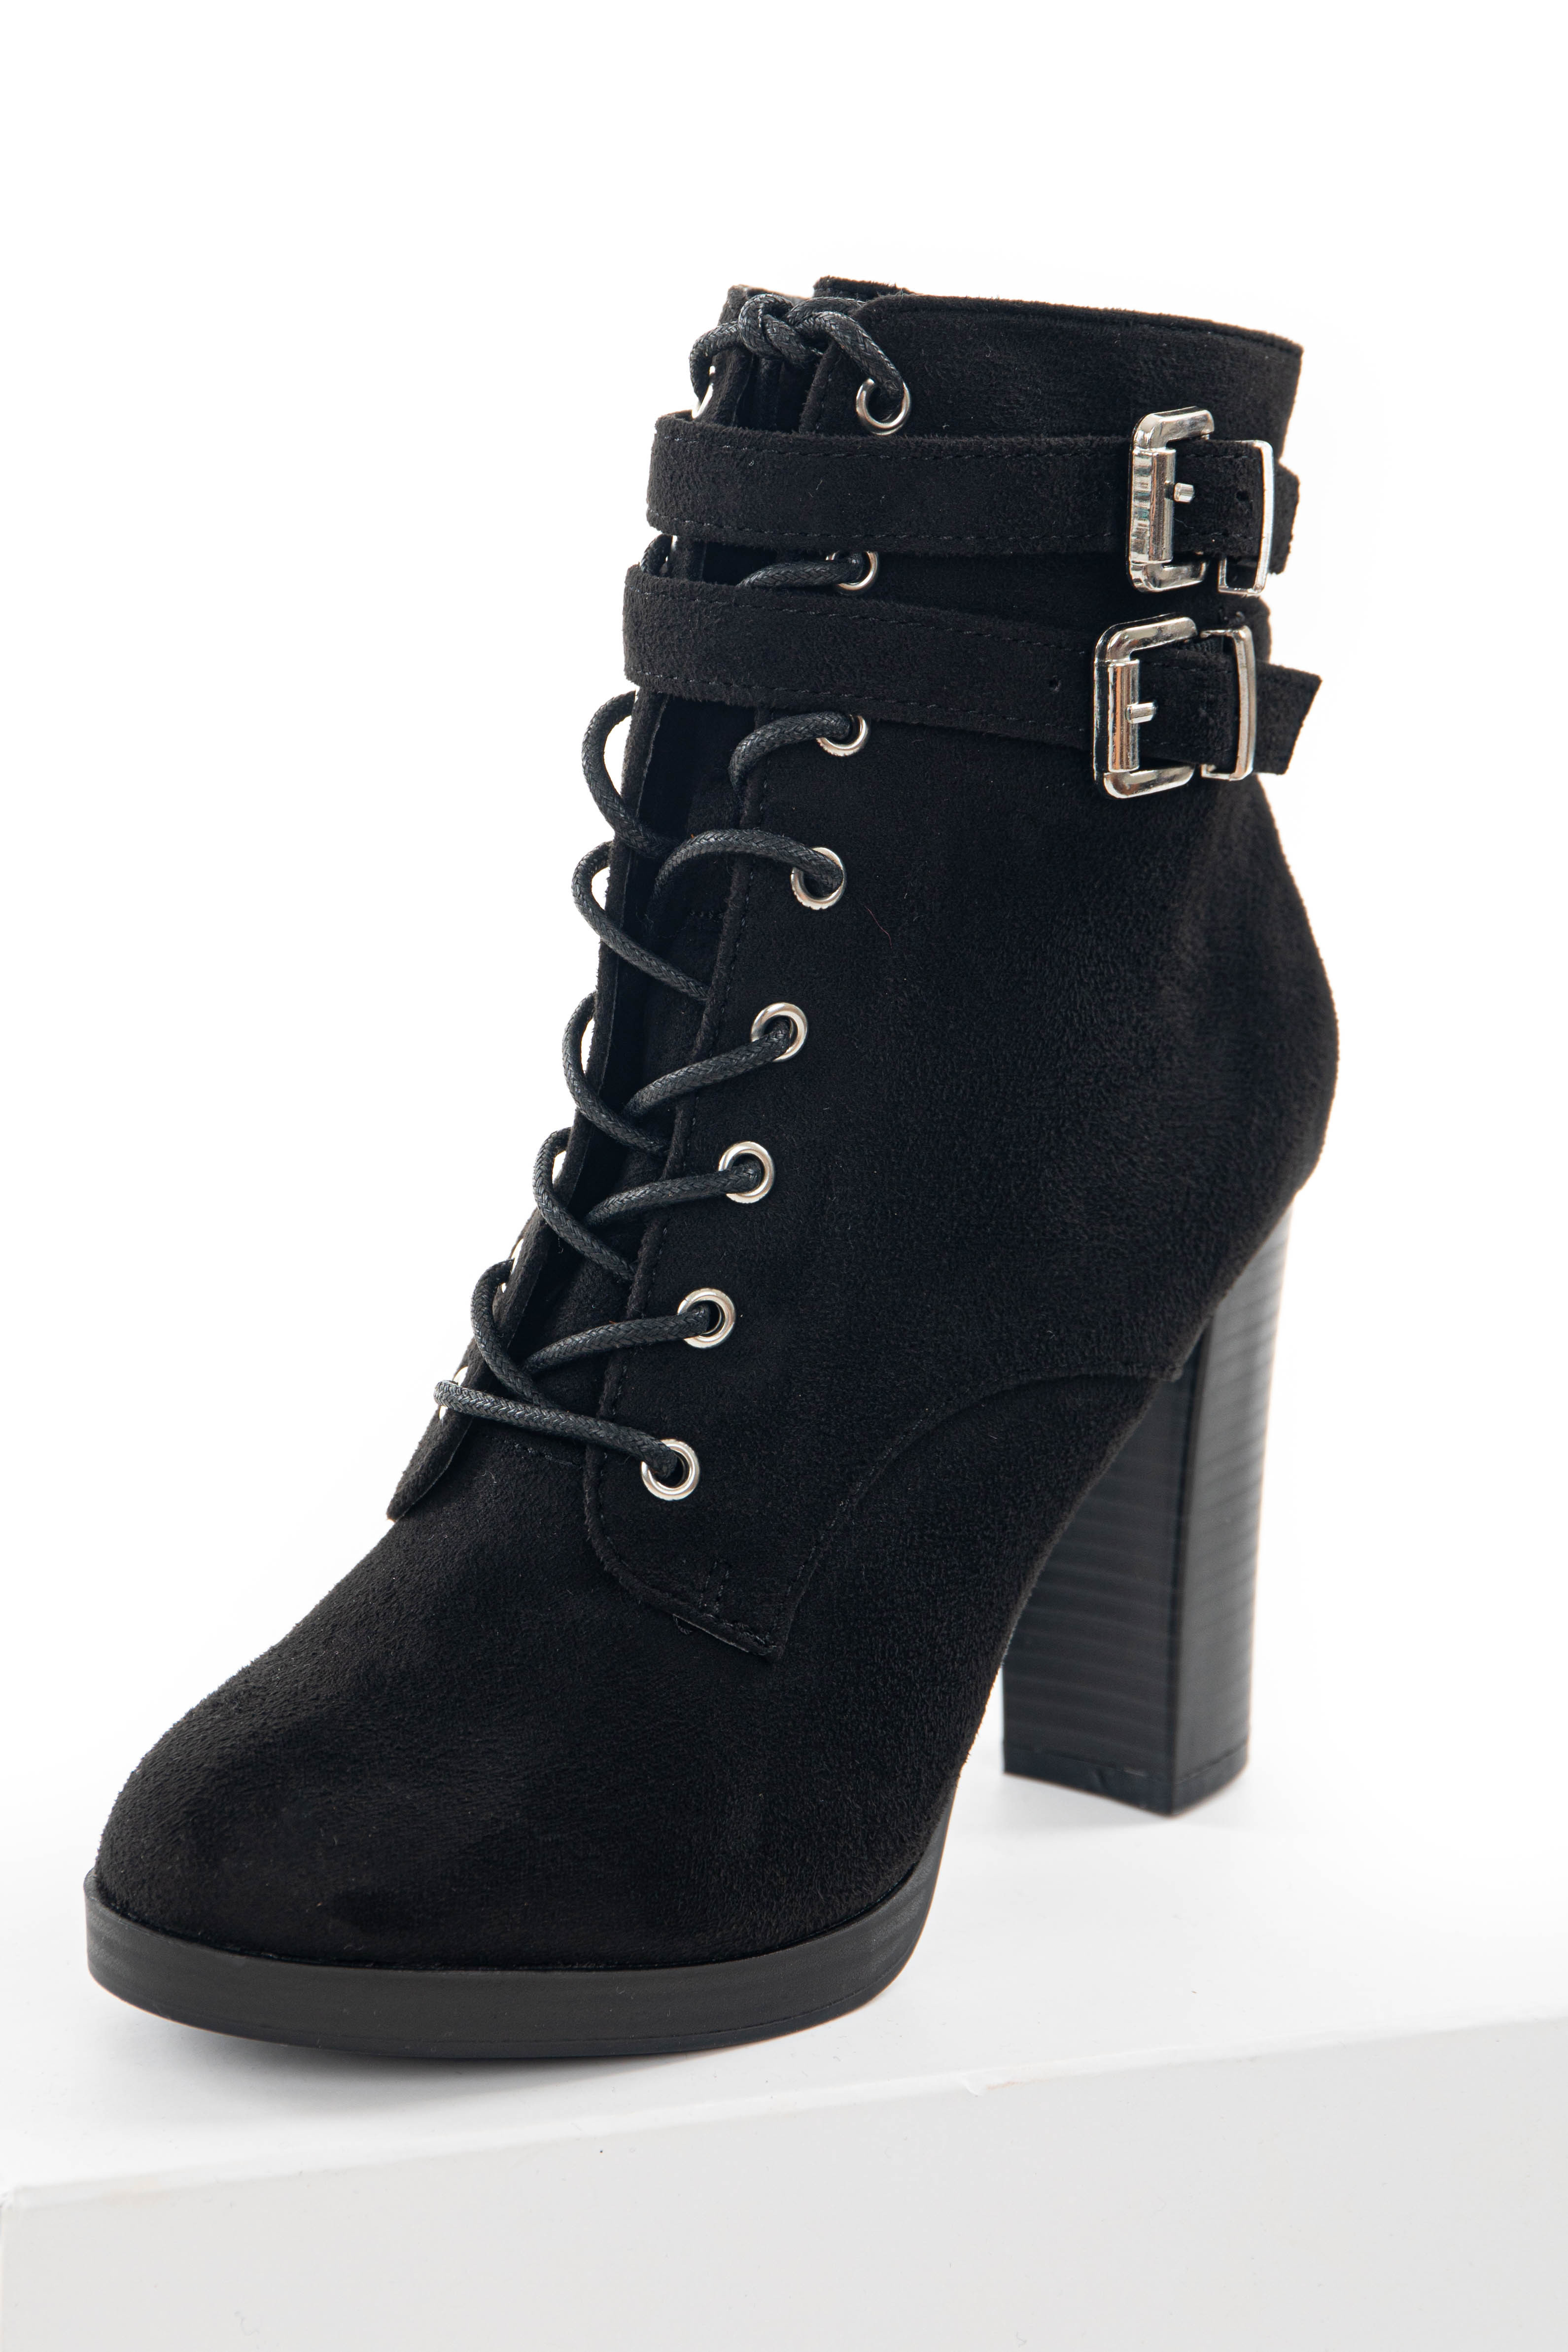 Black Faux Suede Lace Up High Heel Booties